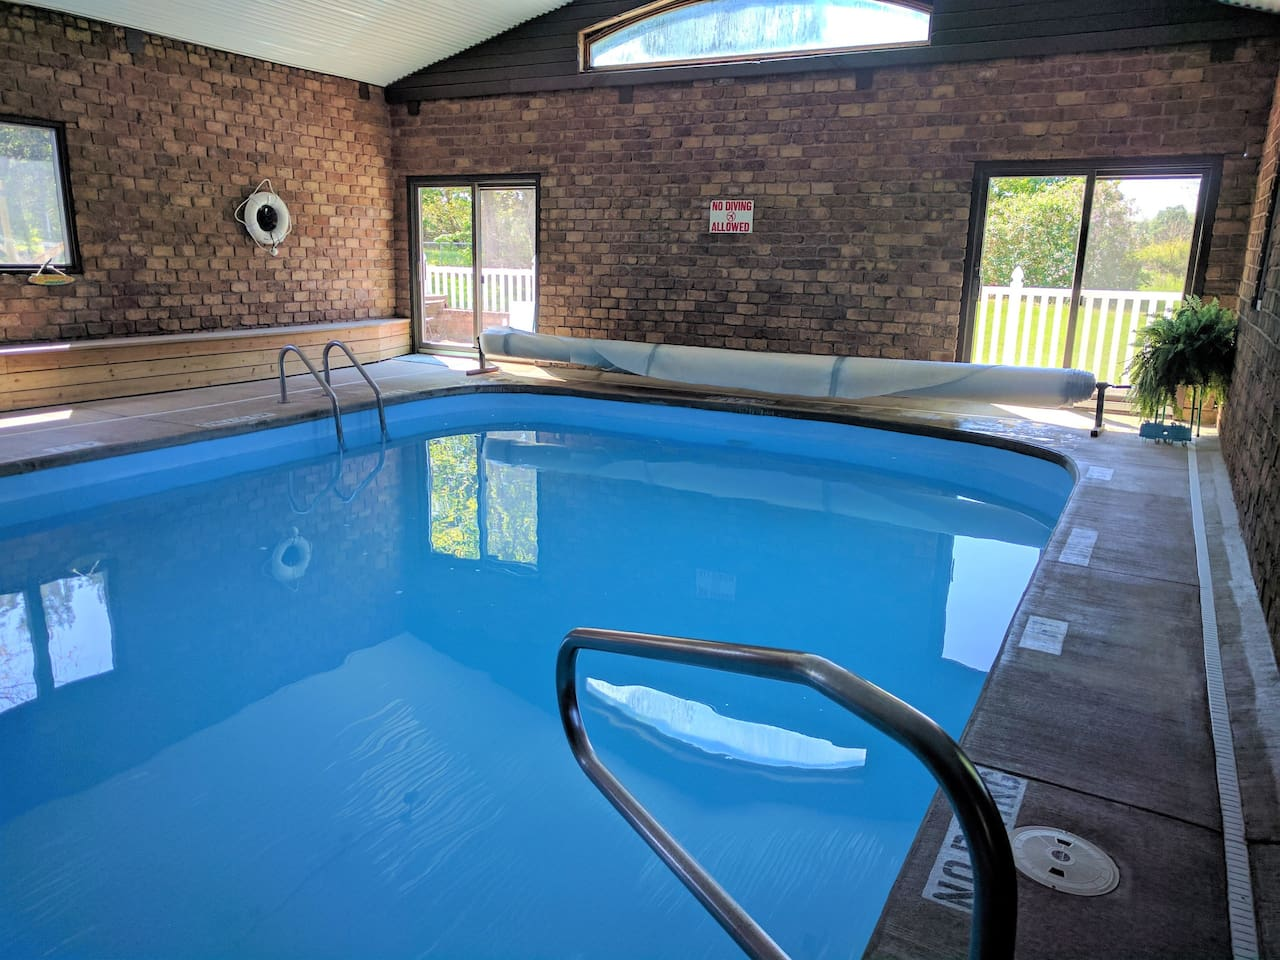 Indoor heated pool. Ready for you at 83 degrees. The 1-foot deep kiddie pool (not shown) is a favorite with the little ones!